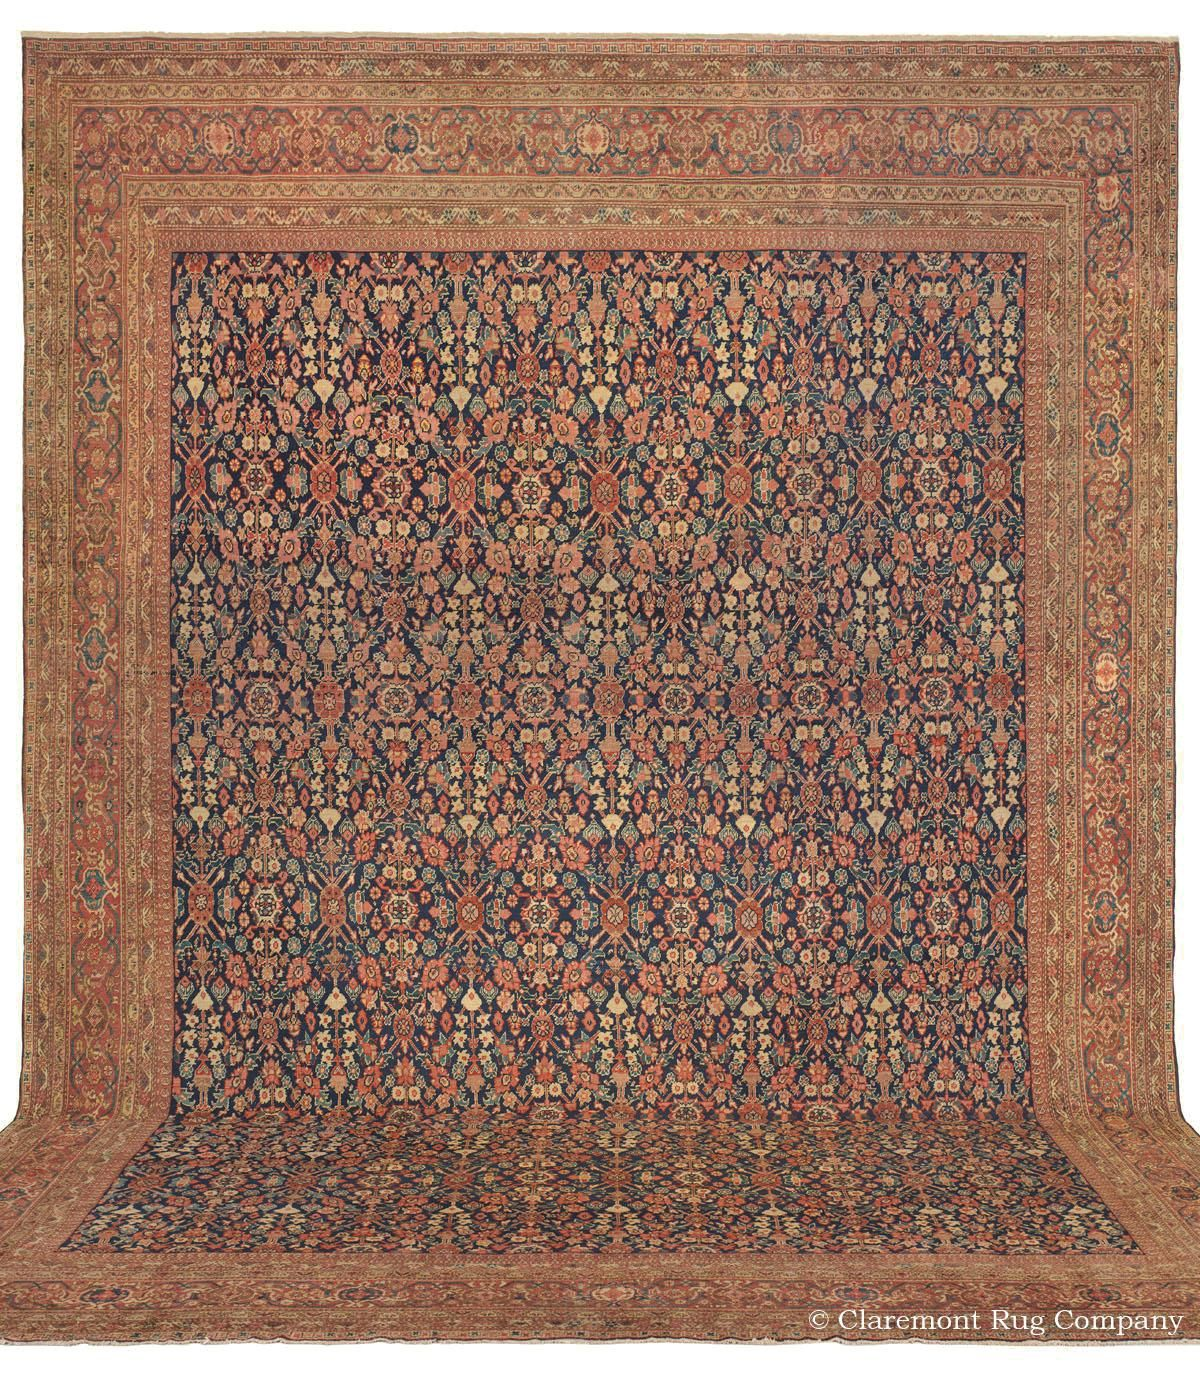 Sultanabad West Central Persian 14ft 0in X 18ft 0in 3rd Quarter 19th Century From O Claremont Rug Company Rugs On Carpet Antique Persian Carpet